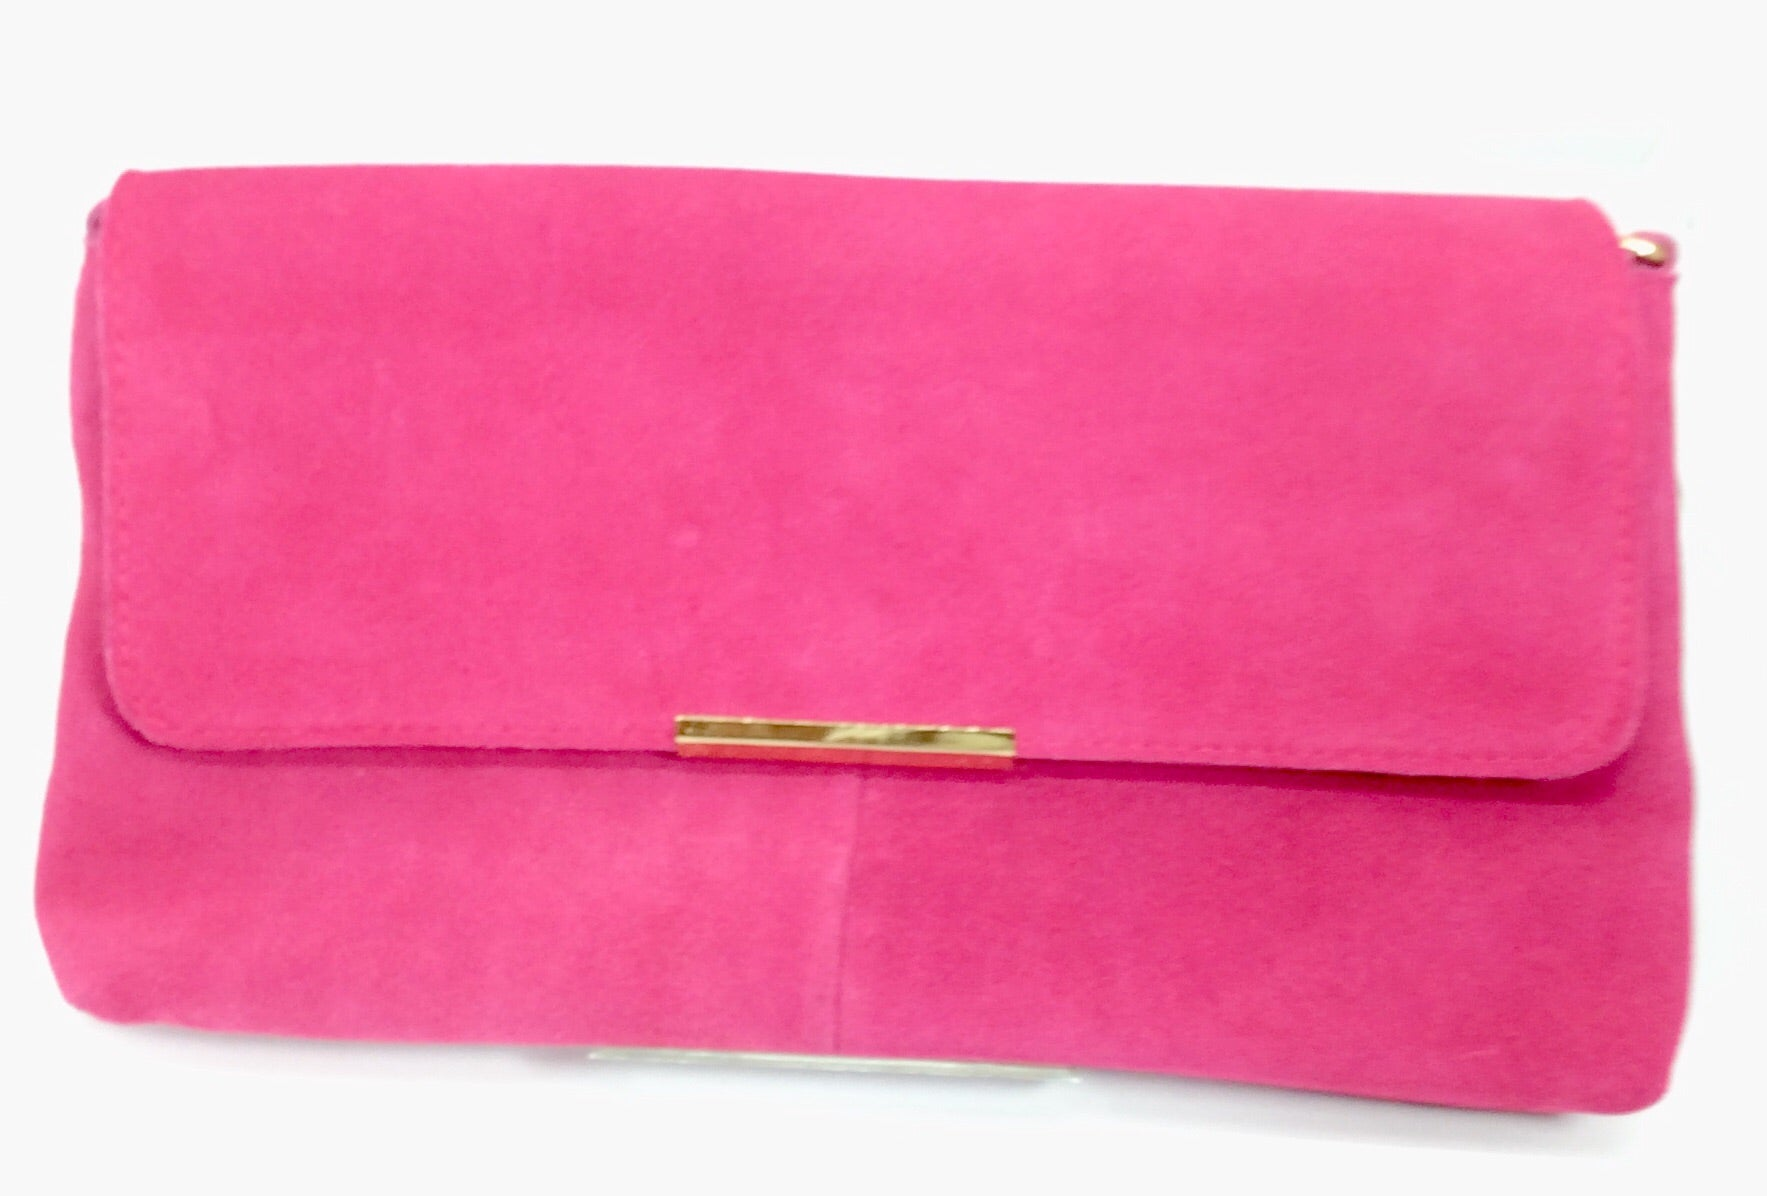 Hot pink suede clutch bag with gold and pink chain